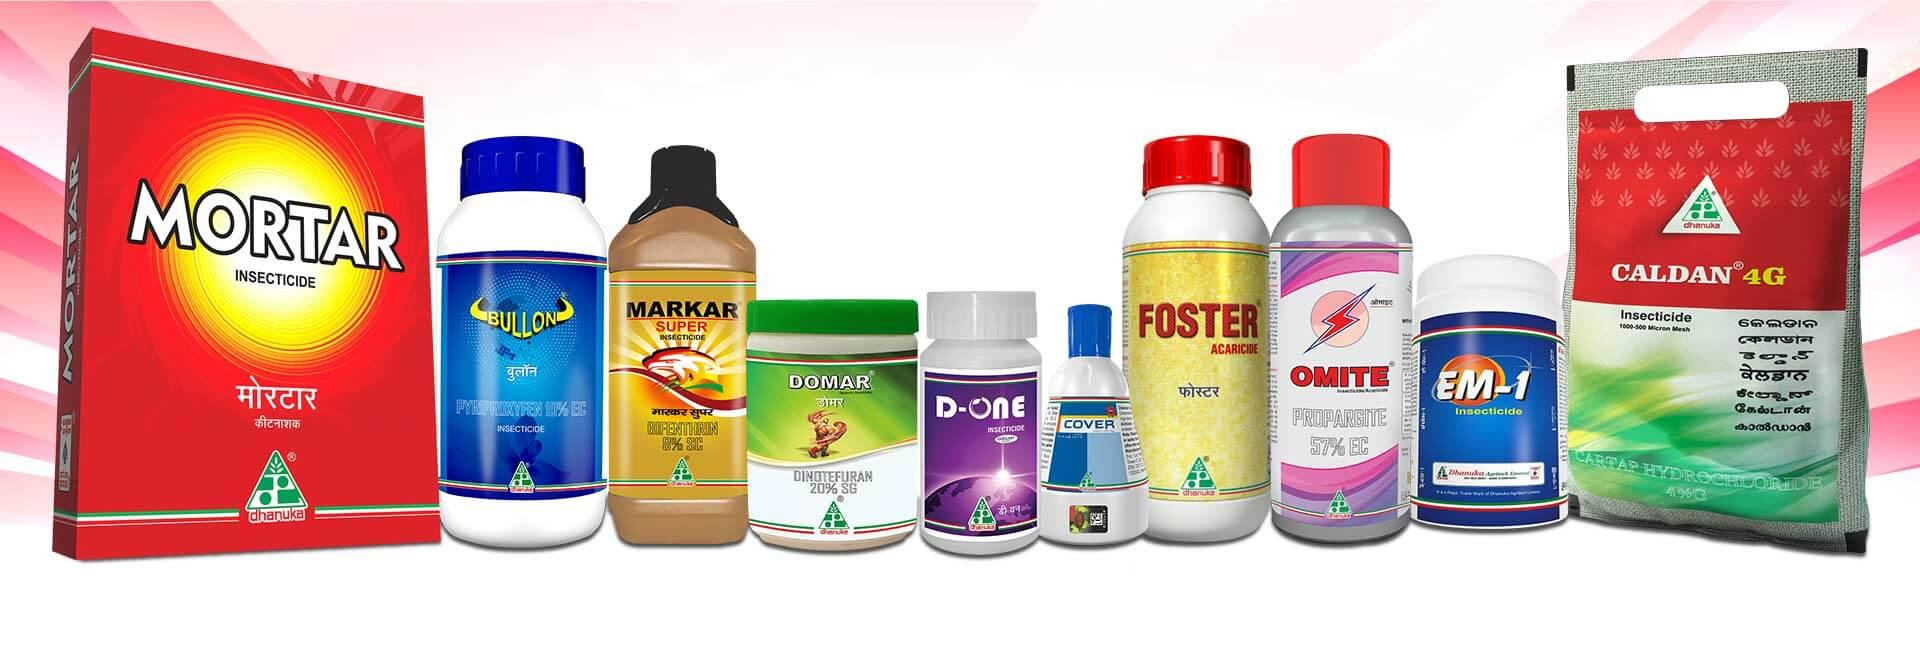 product Listing banner section 1 image